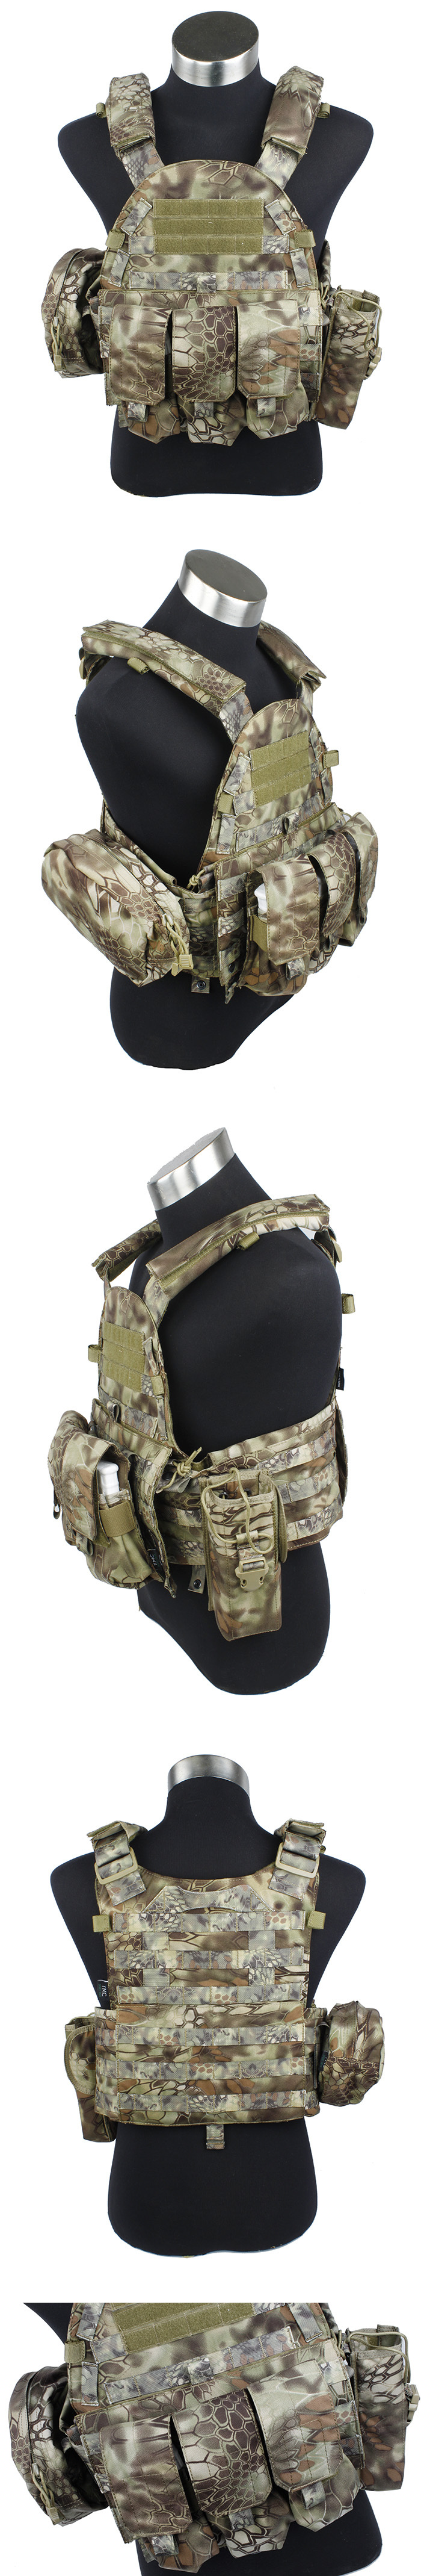 TMC_6094_style_Plate_Carrier_w_3_pouches_MAD_a